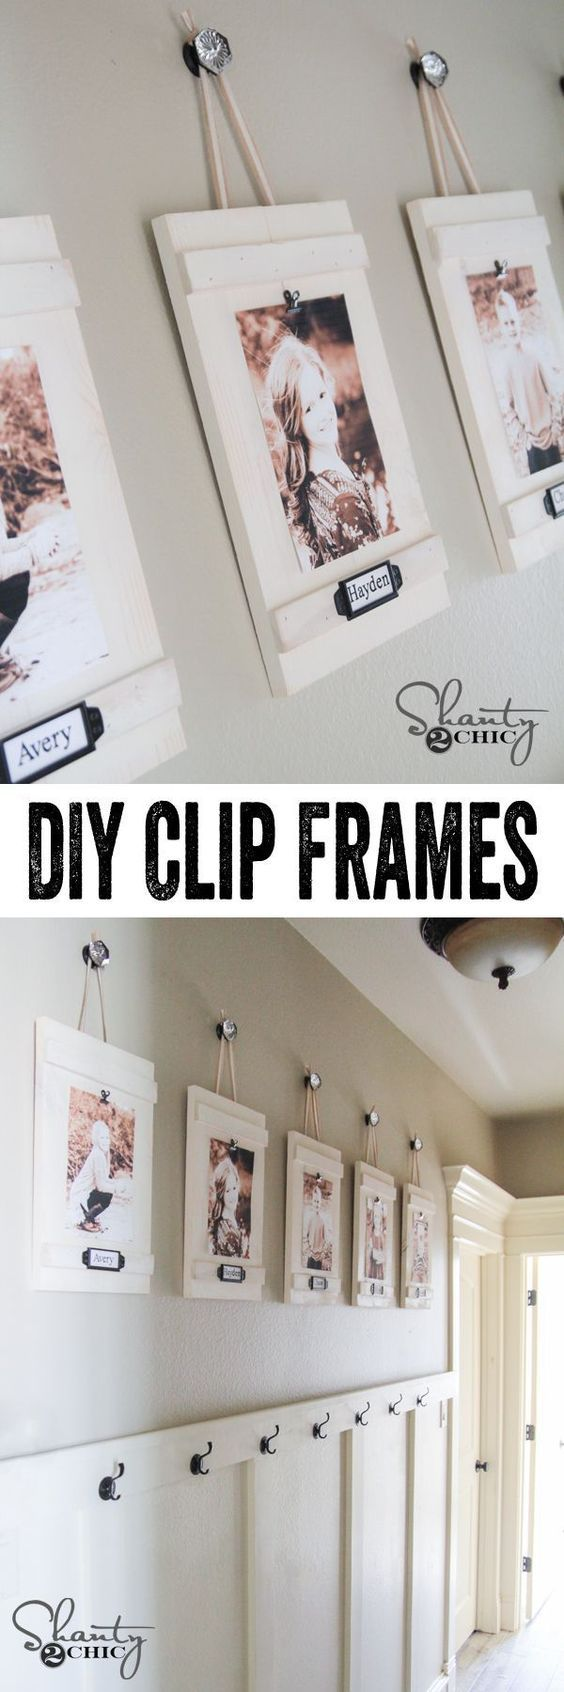 SIMPLE Clip Frame Tutorial by Shanty2Chic... So cheap too! LOVE.